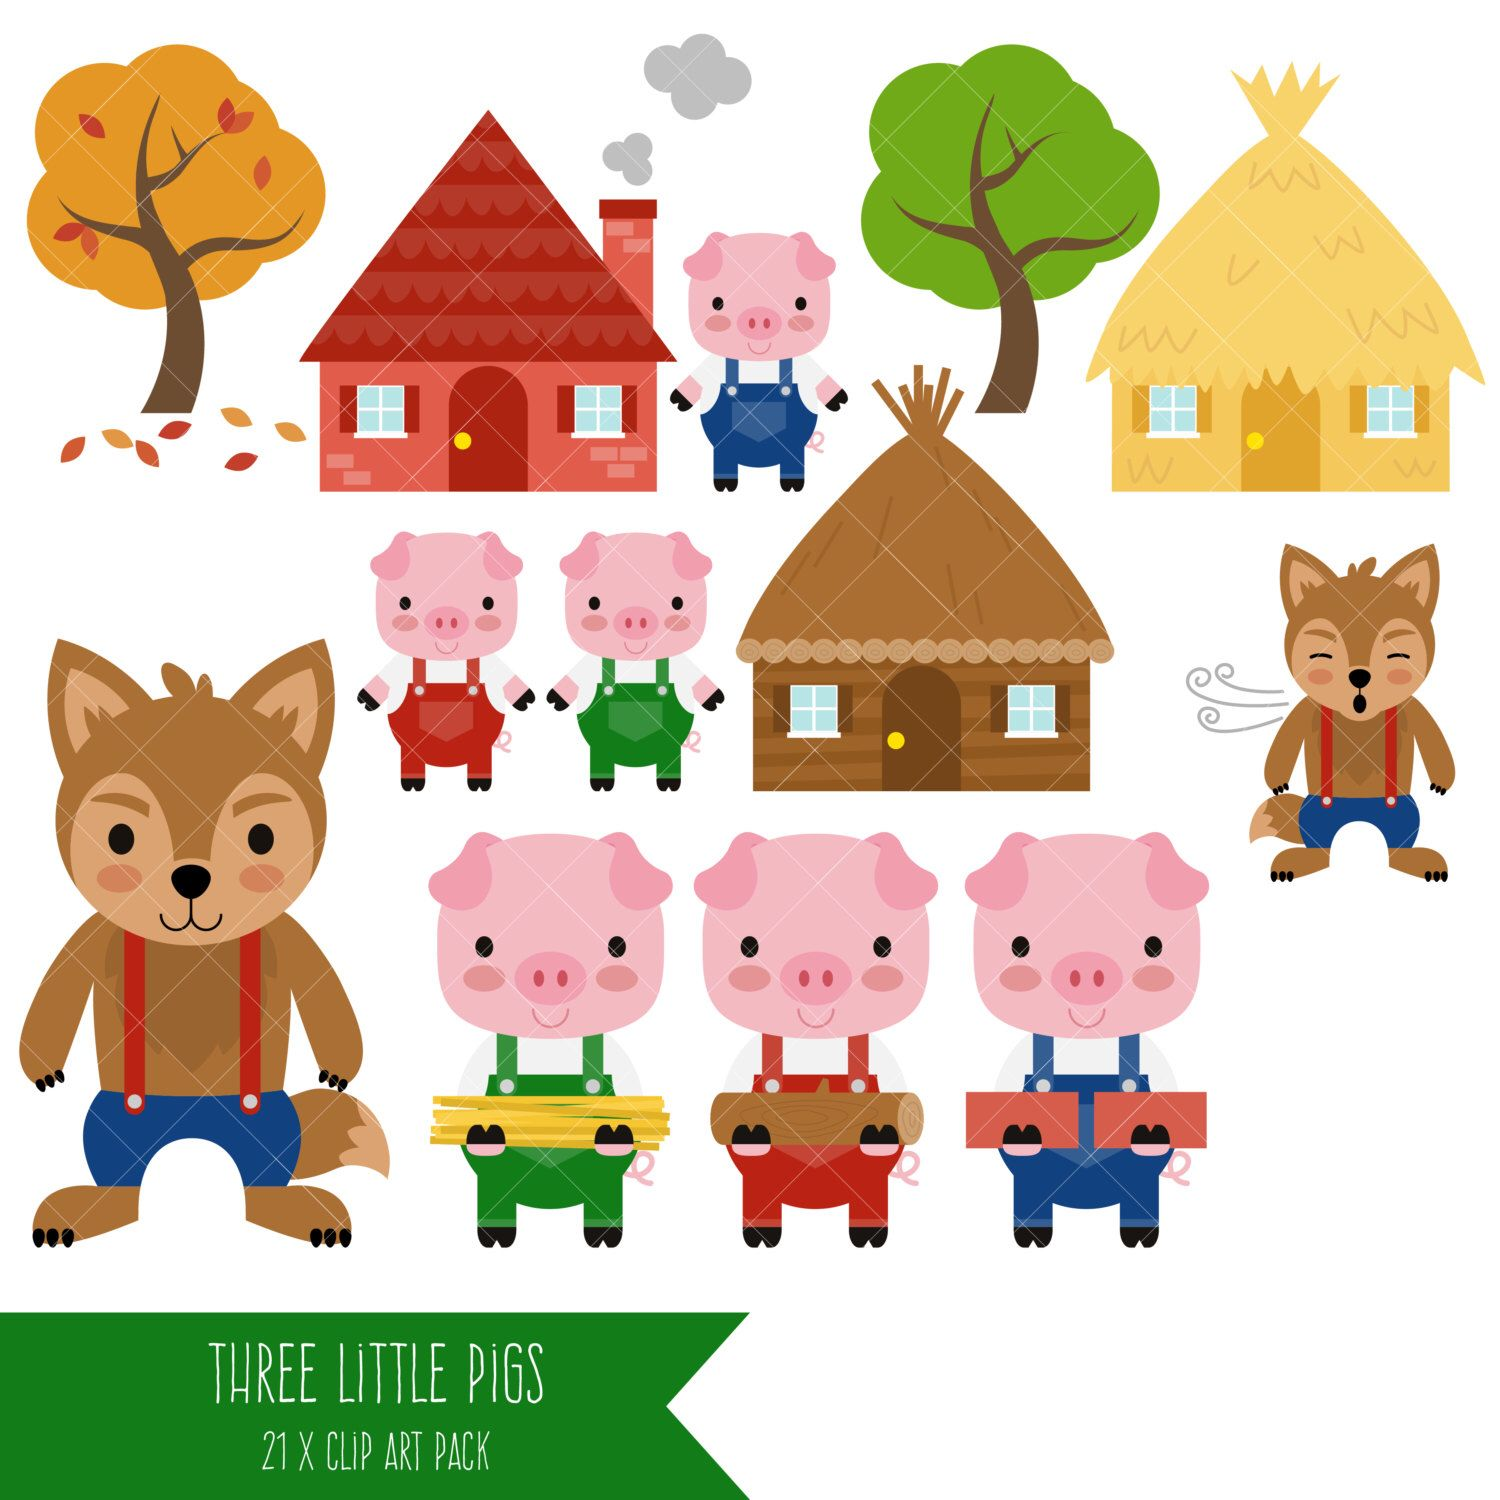 3 pigs clipart png library Three Little Pigs Clipart / Big Bad Wolf Clip Art   Maddies two ... png library